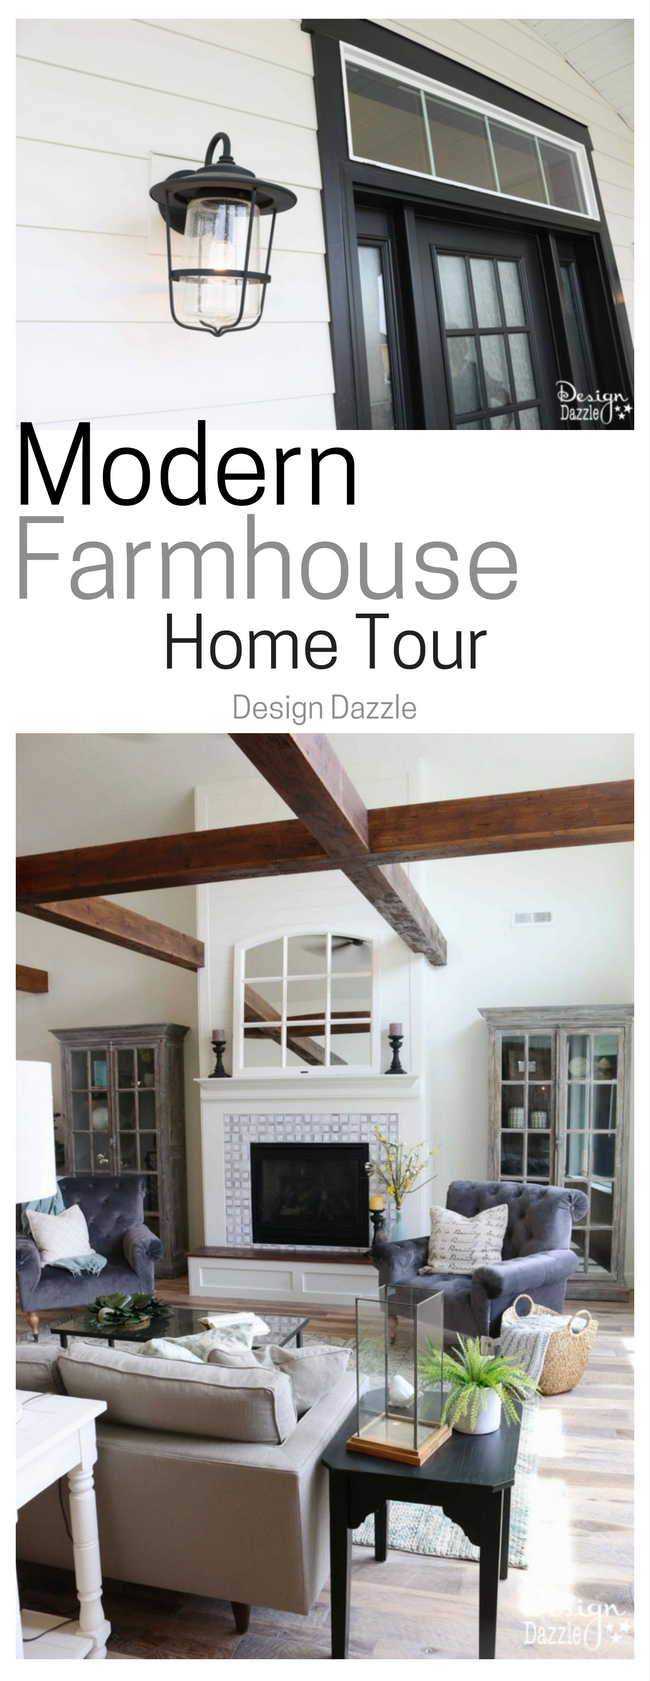 This modern farmhouse home tour is so pretty! | Design Dazzle